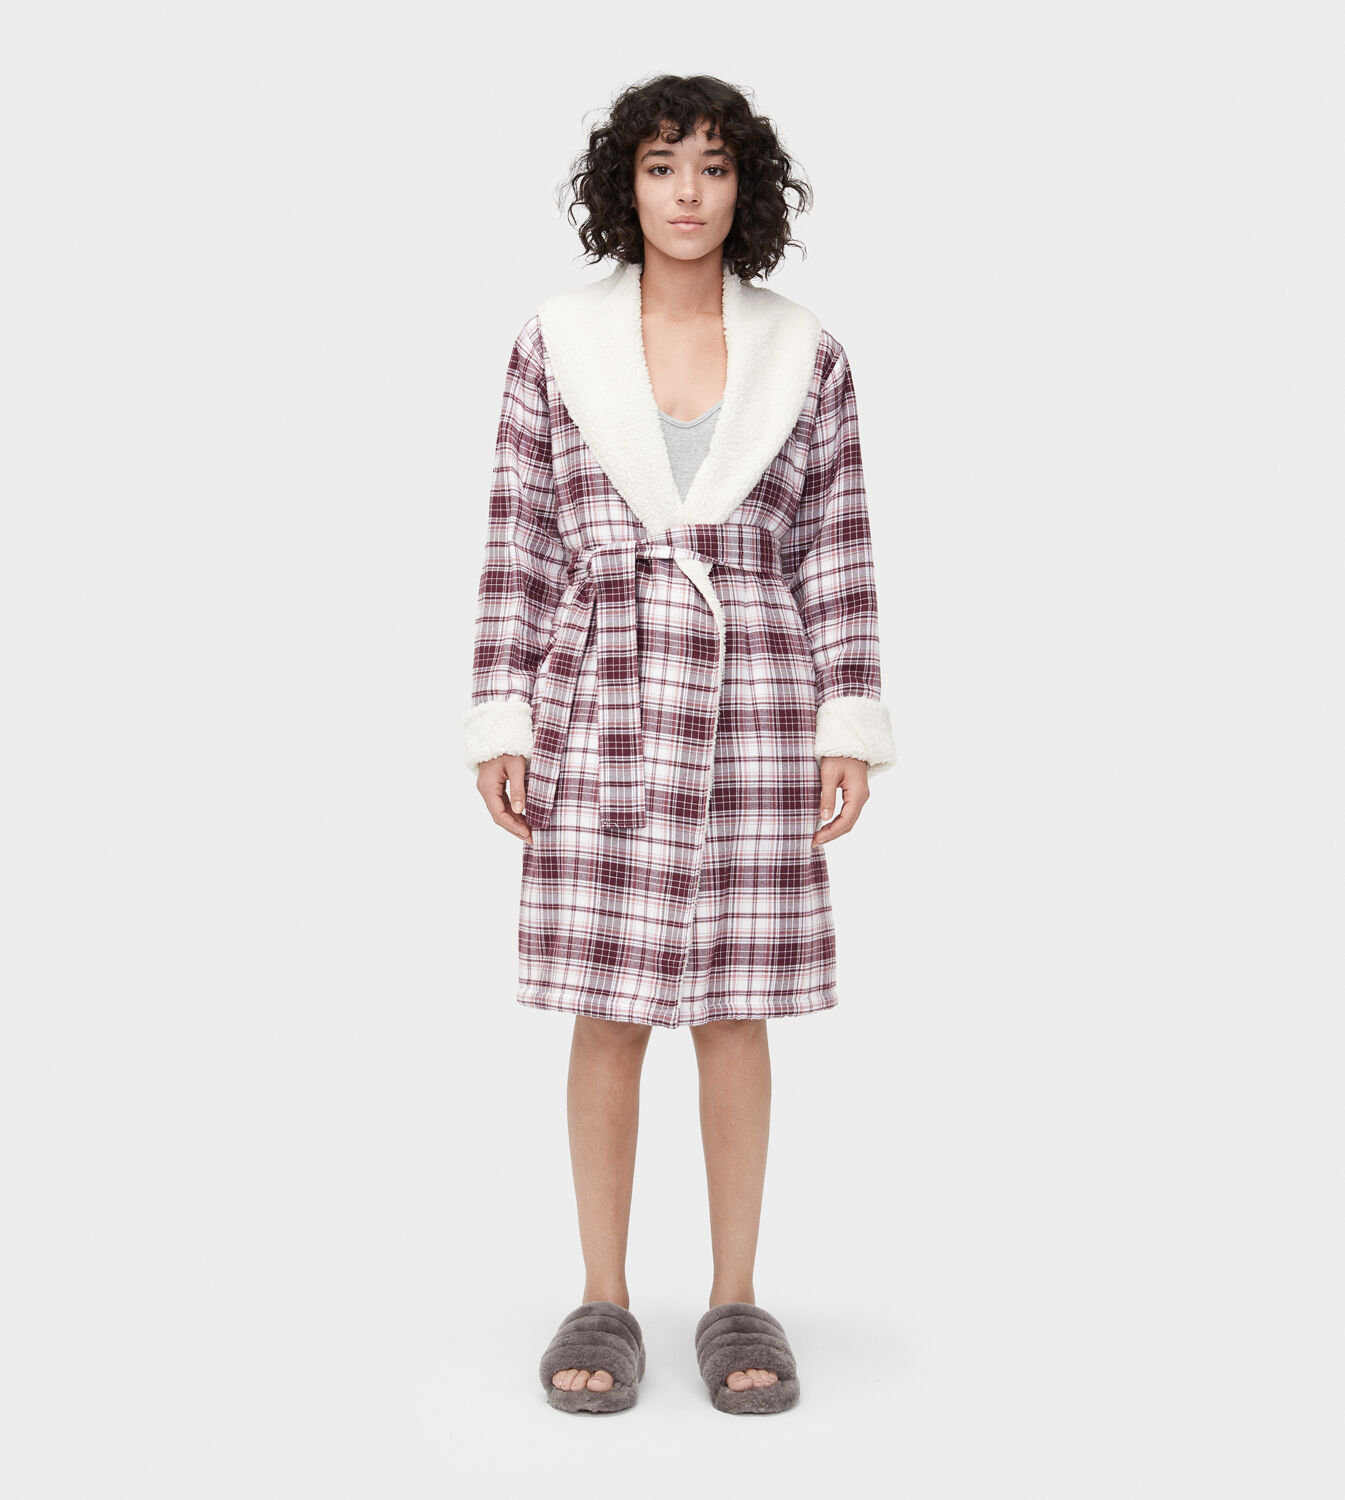 e1c77cdca5 Zoom anika flannel robe image jpg 1500x1673 Long flannel robes for women